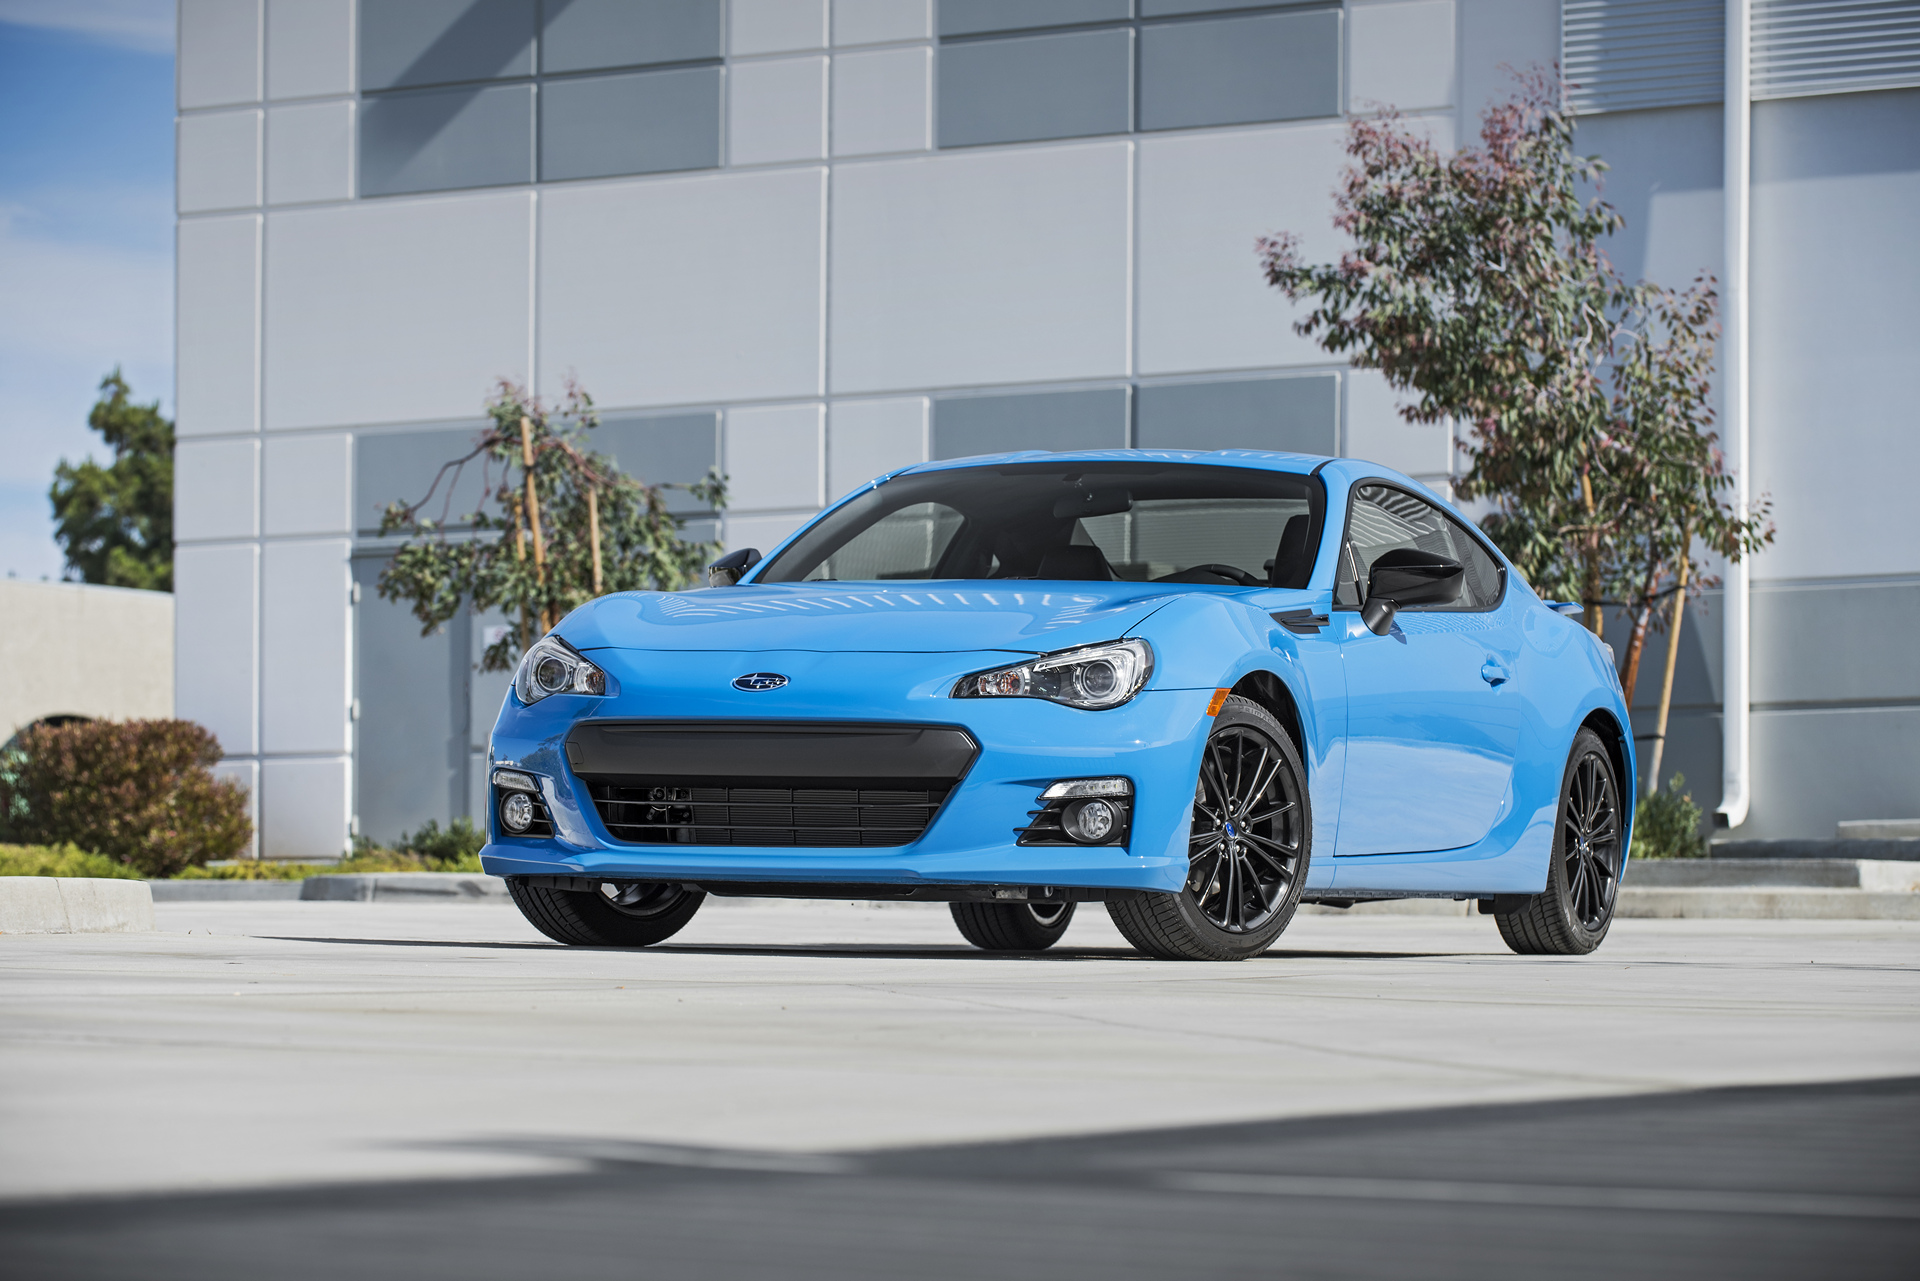 2016 Subaru BRZ © Fuji Heavy Industries, Ltd.